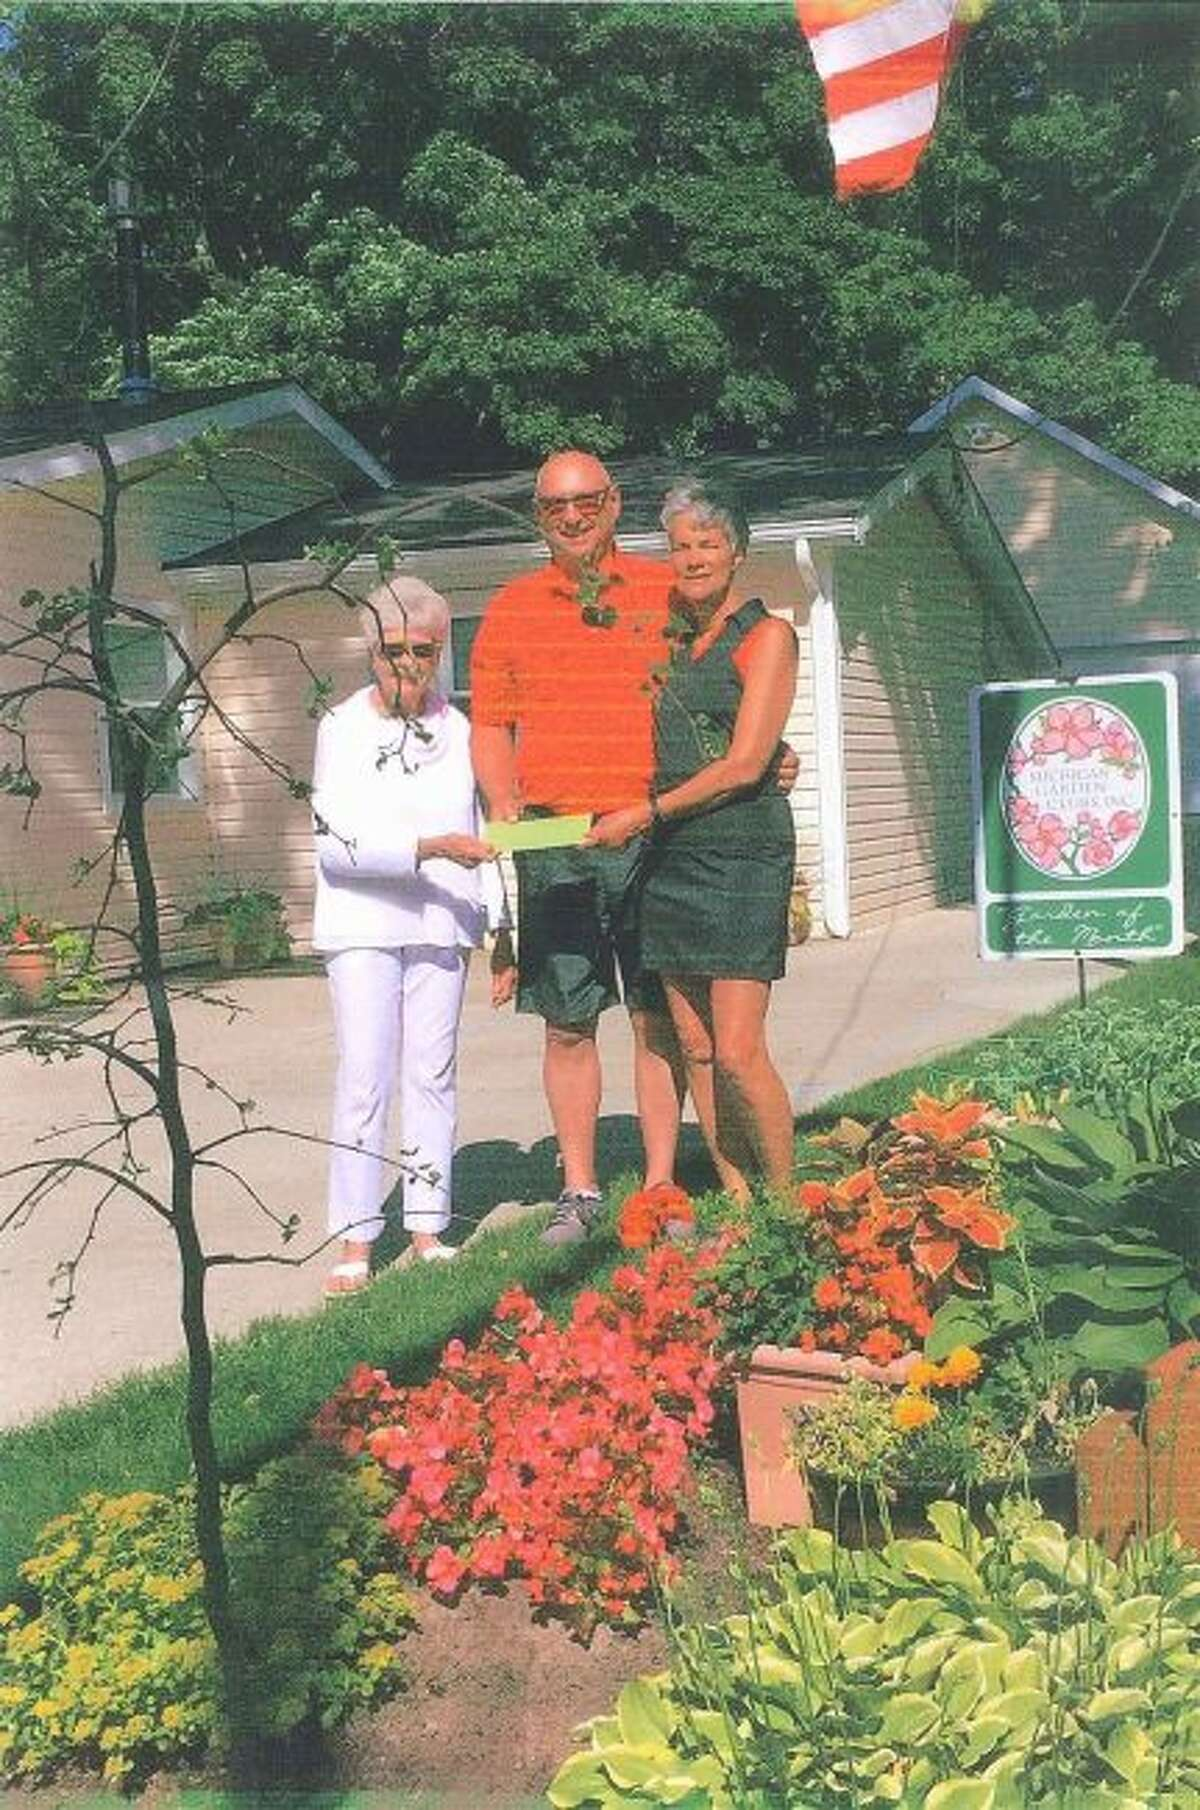 Bill and Judy Kuiper, of Bear Lake, were recognized for the Garden of the Month by the Spirit of the Woods Garden Club Inc. (Courtesy photo)